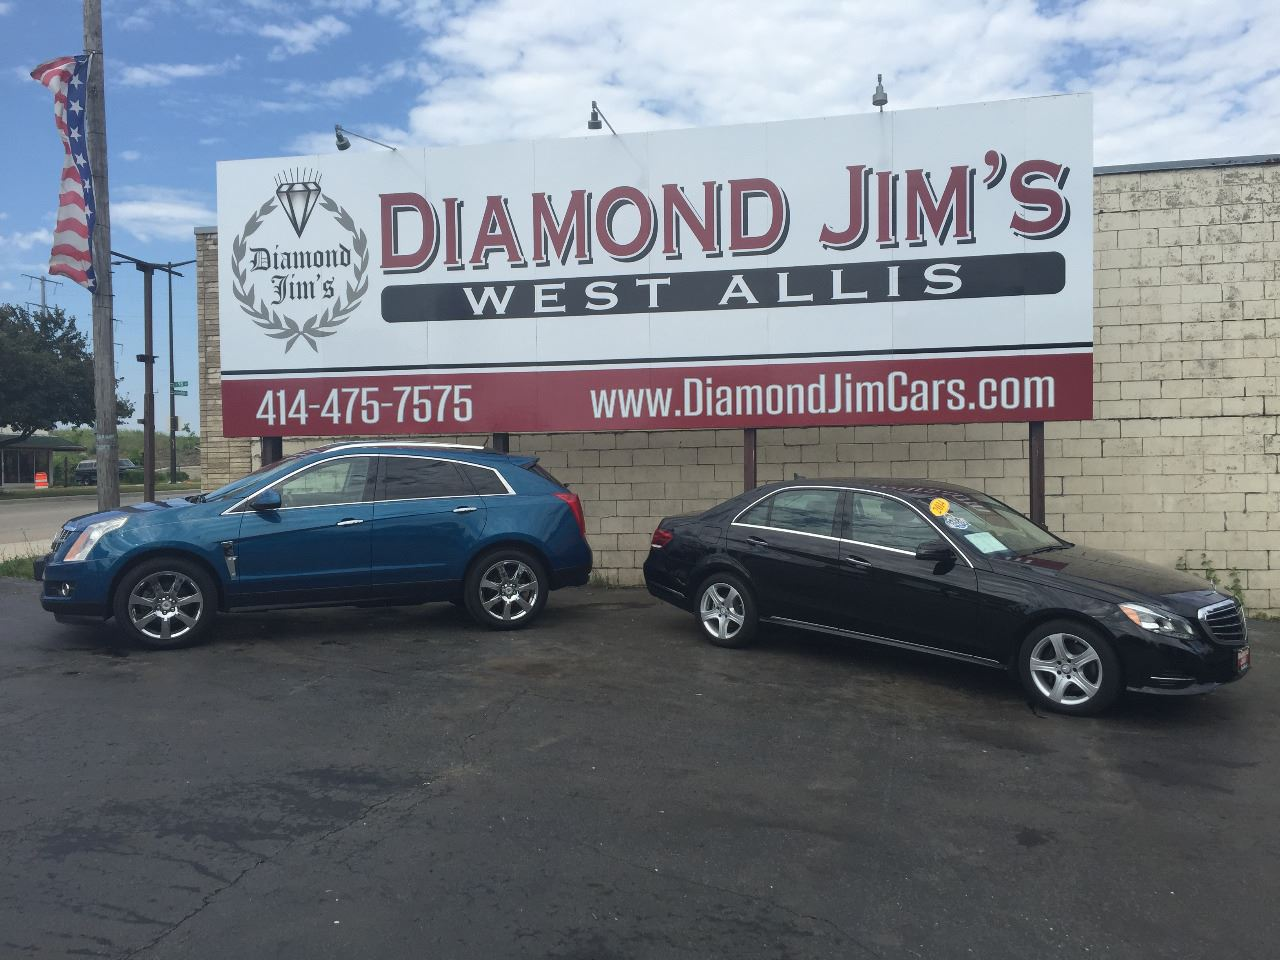 Diamond Jim's West Allis